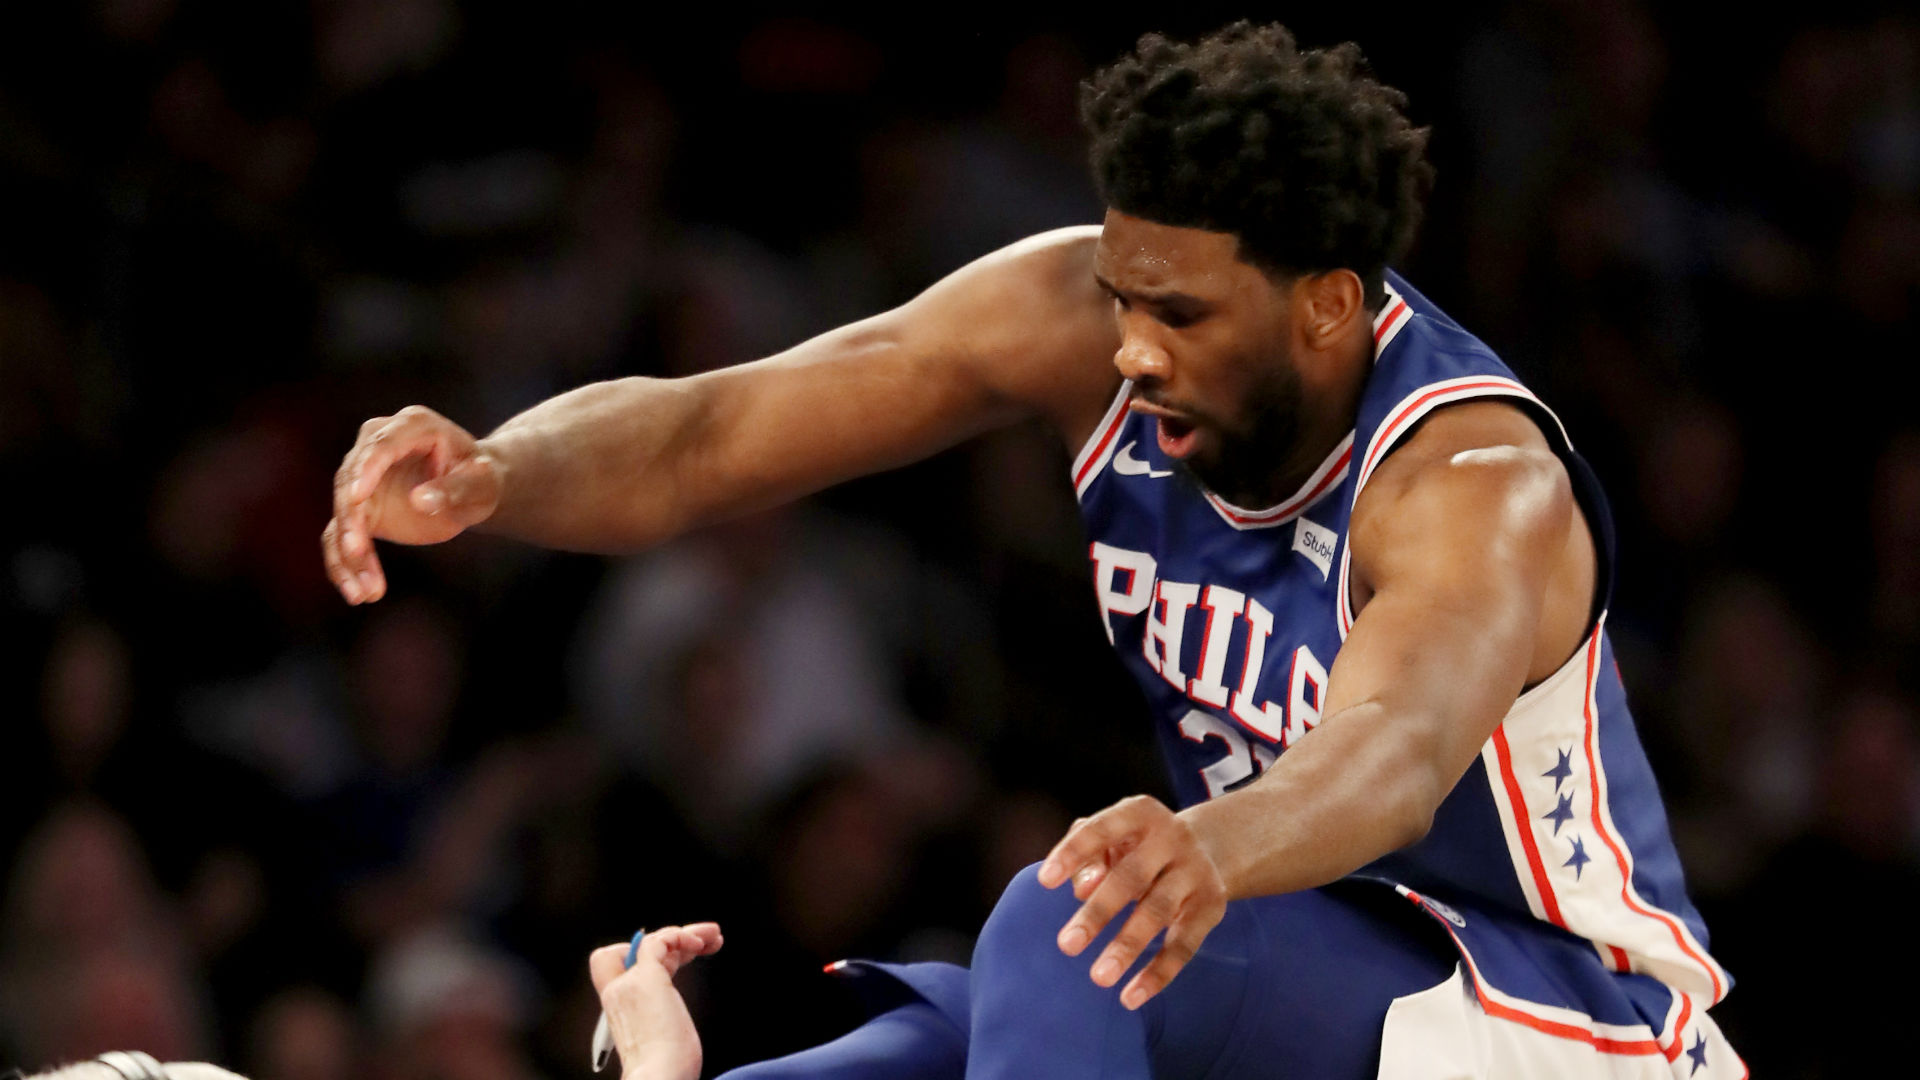 'Crisis averted': Joel Embiid avoids destroying actress Regina King